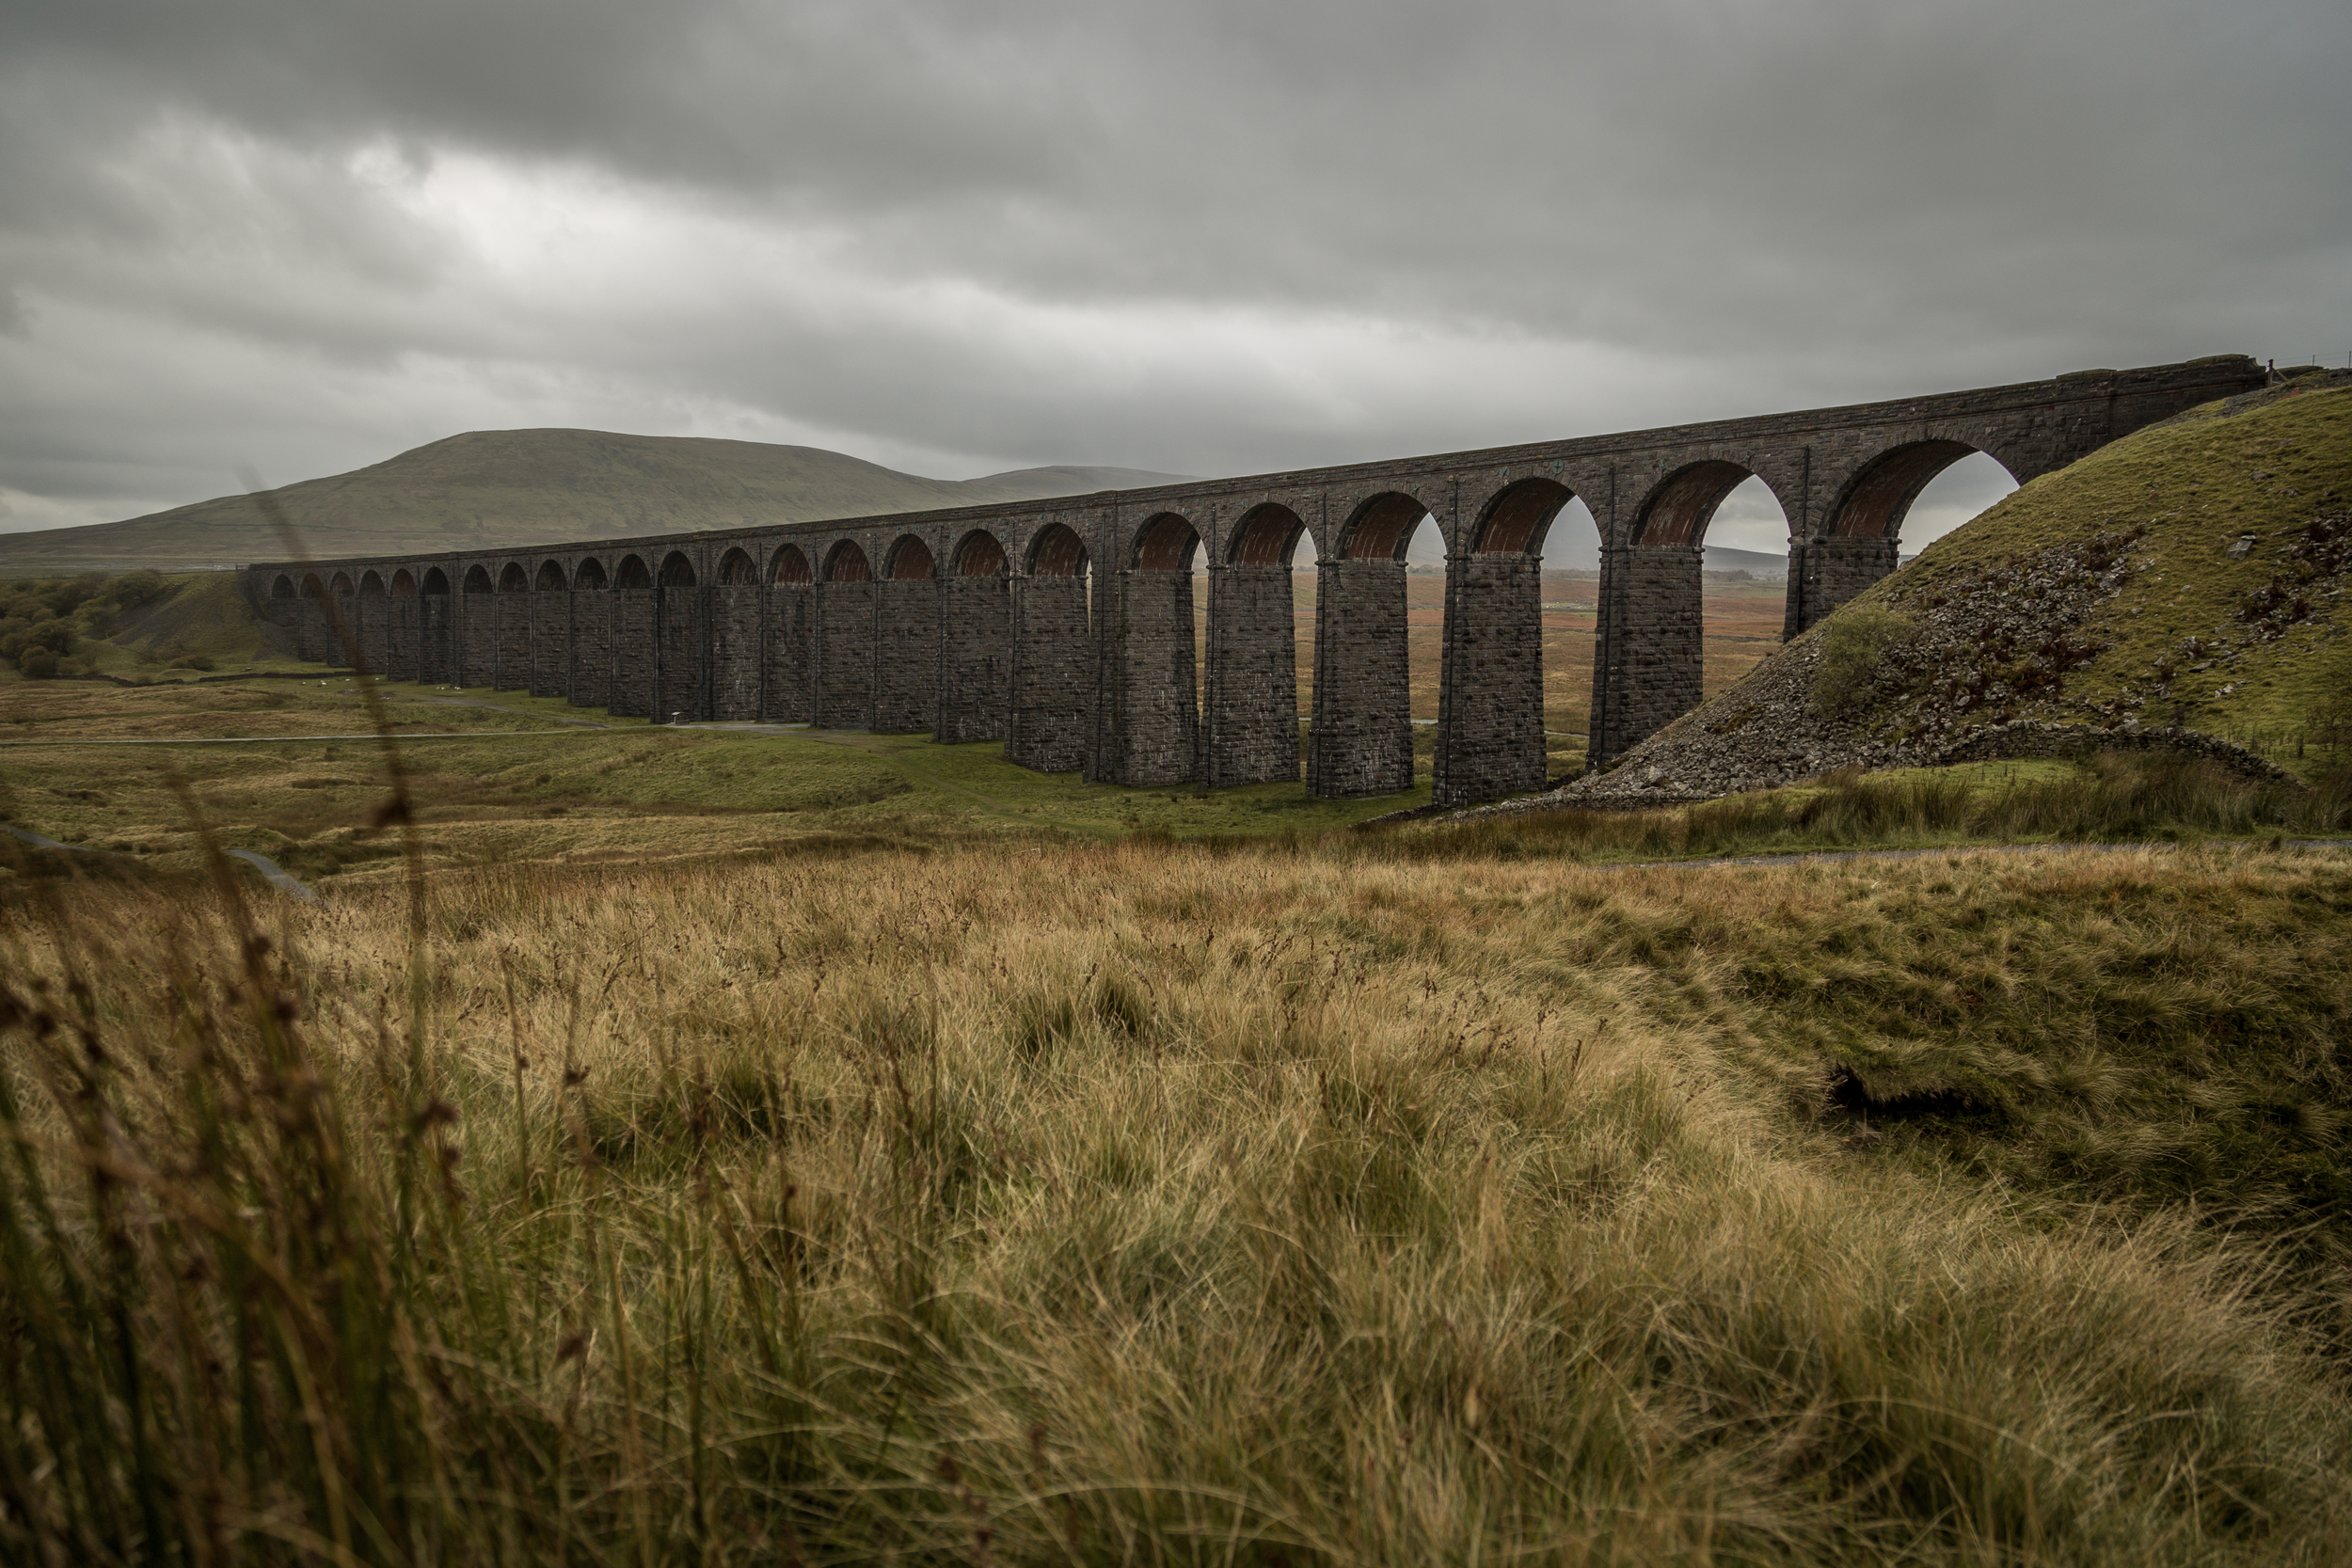 Ribblehead Viaduct, North Yorkshire. Cumbria.